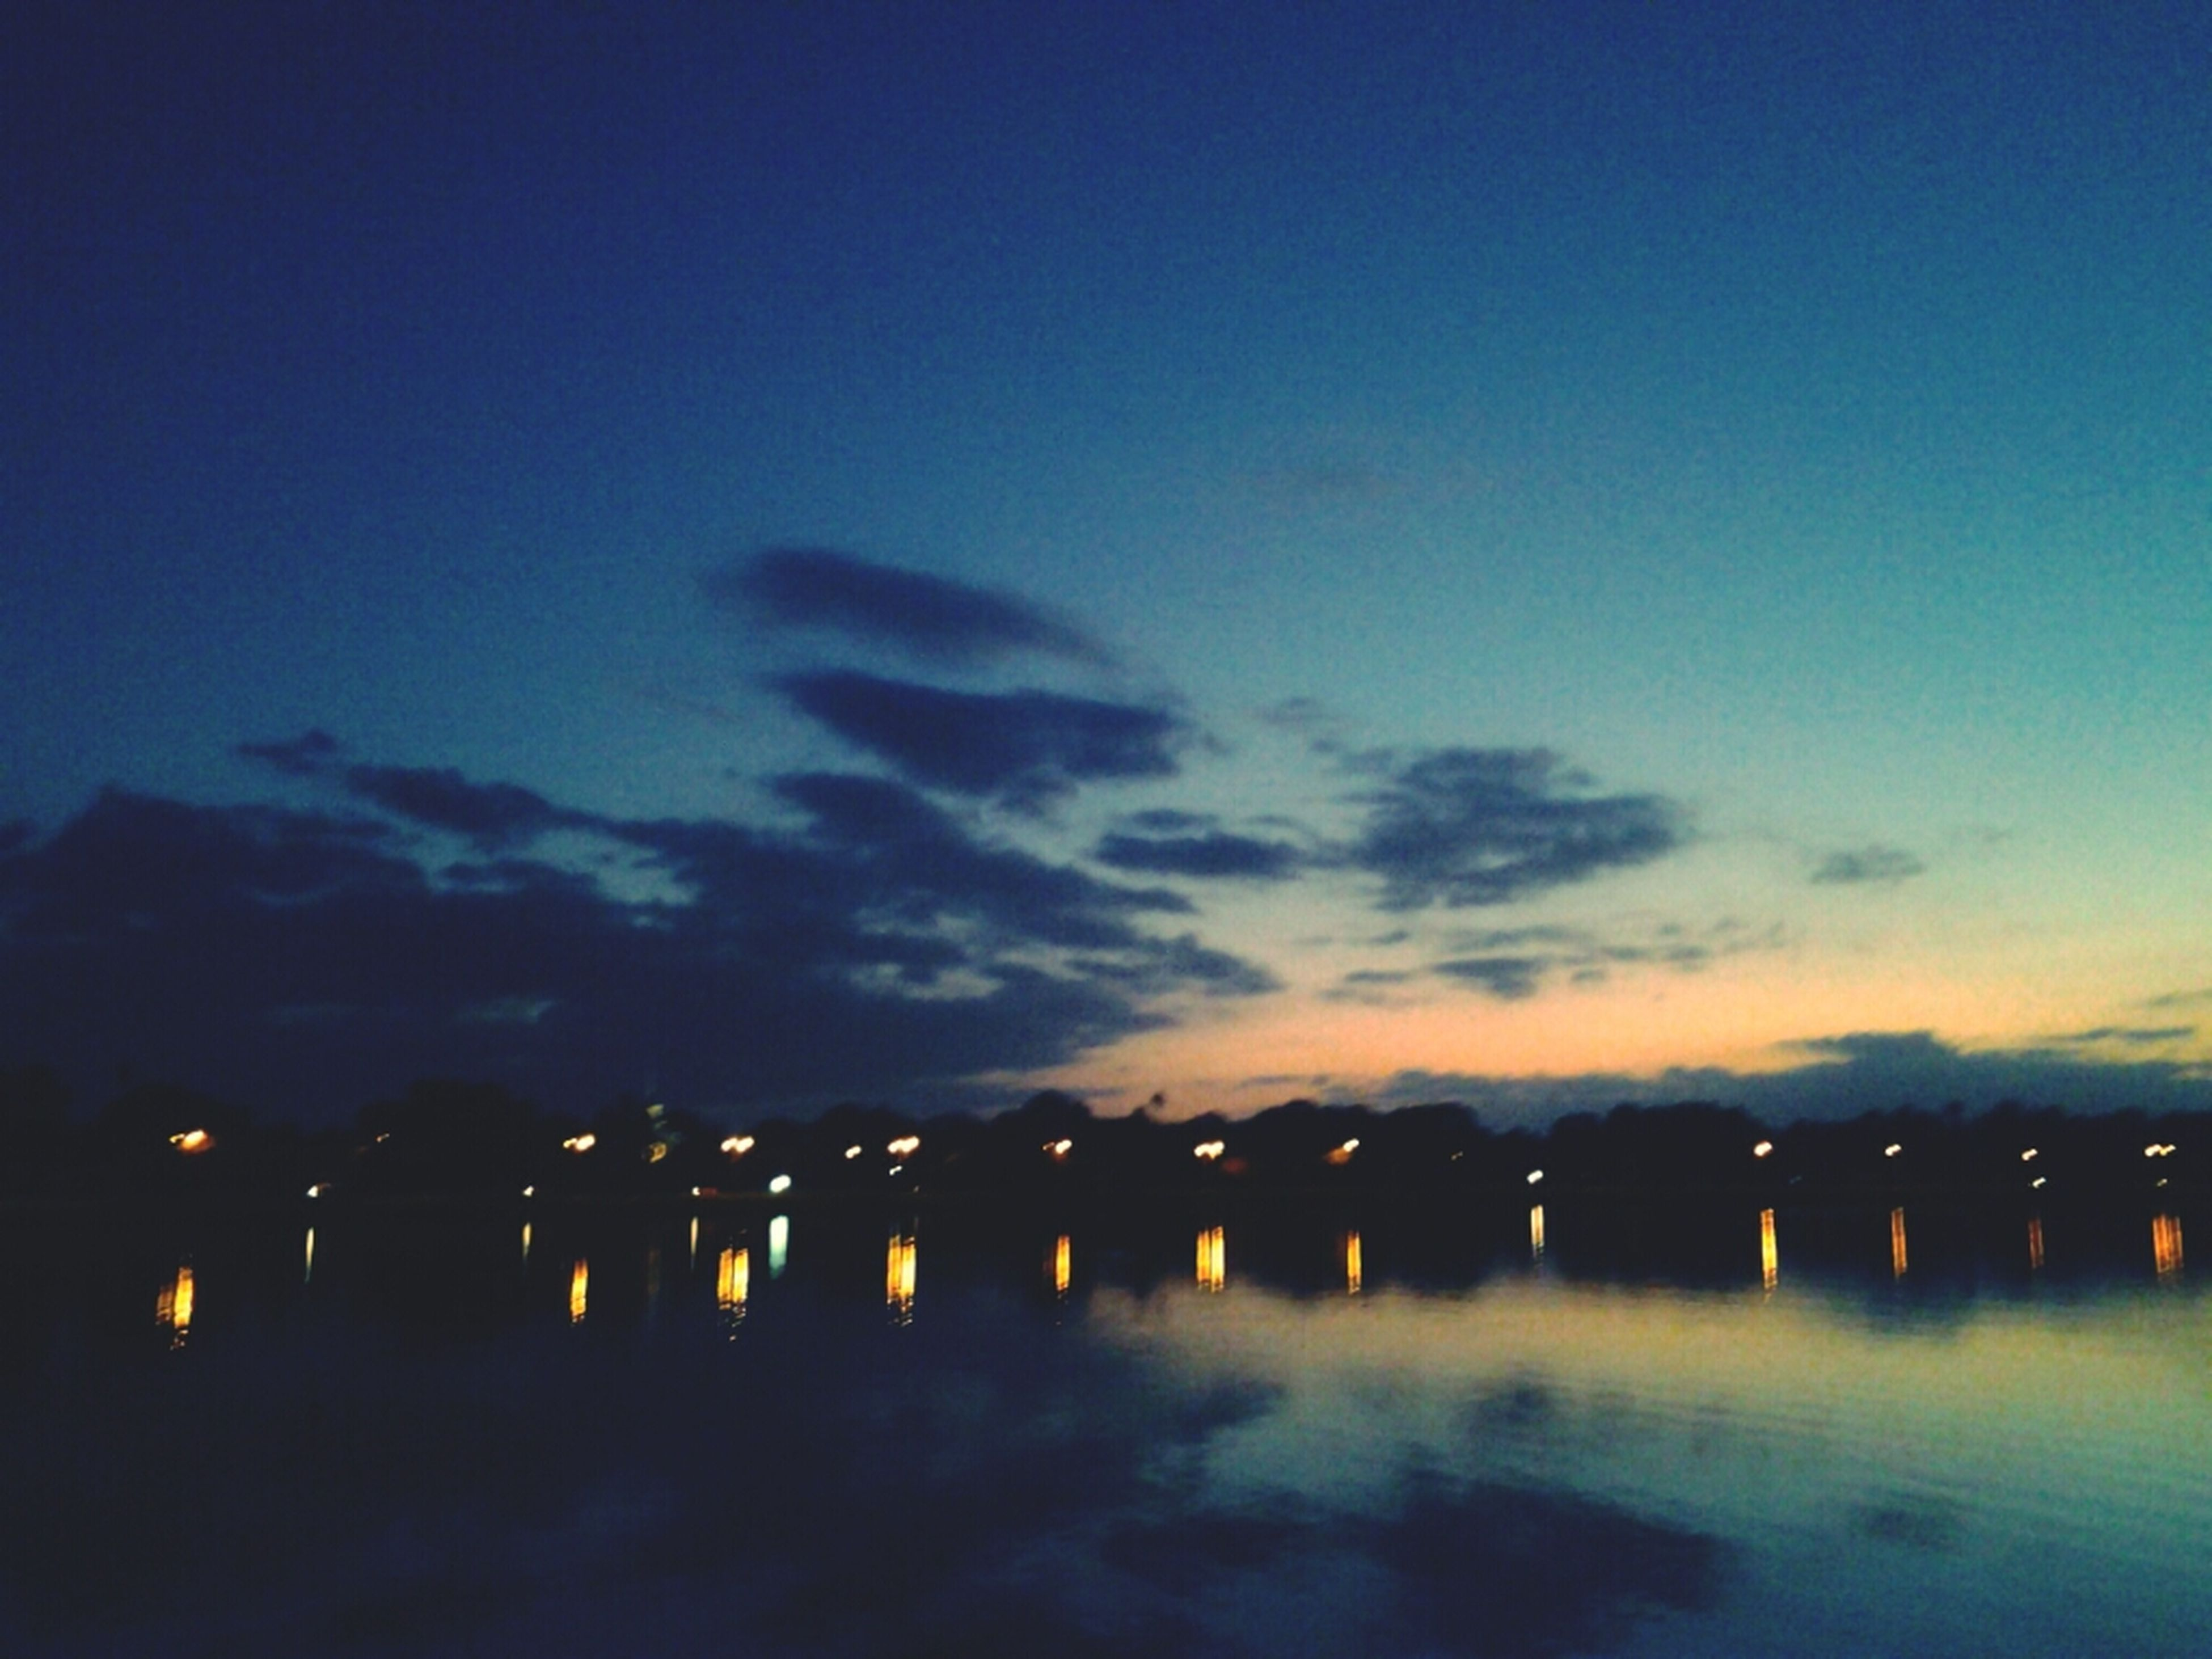 water, waterfront, reflection, sunset, illuminated, sky, sea, silhouette, tranquility, scenics, tranquil scene, dusk, beauty in nature, pier, night, nature, idyllic, lake, cloud - sky, outdoors